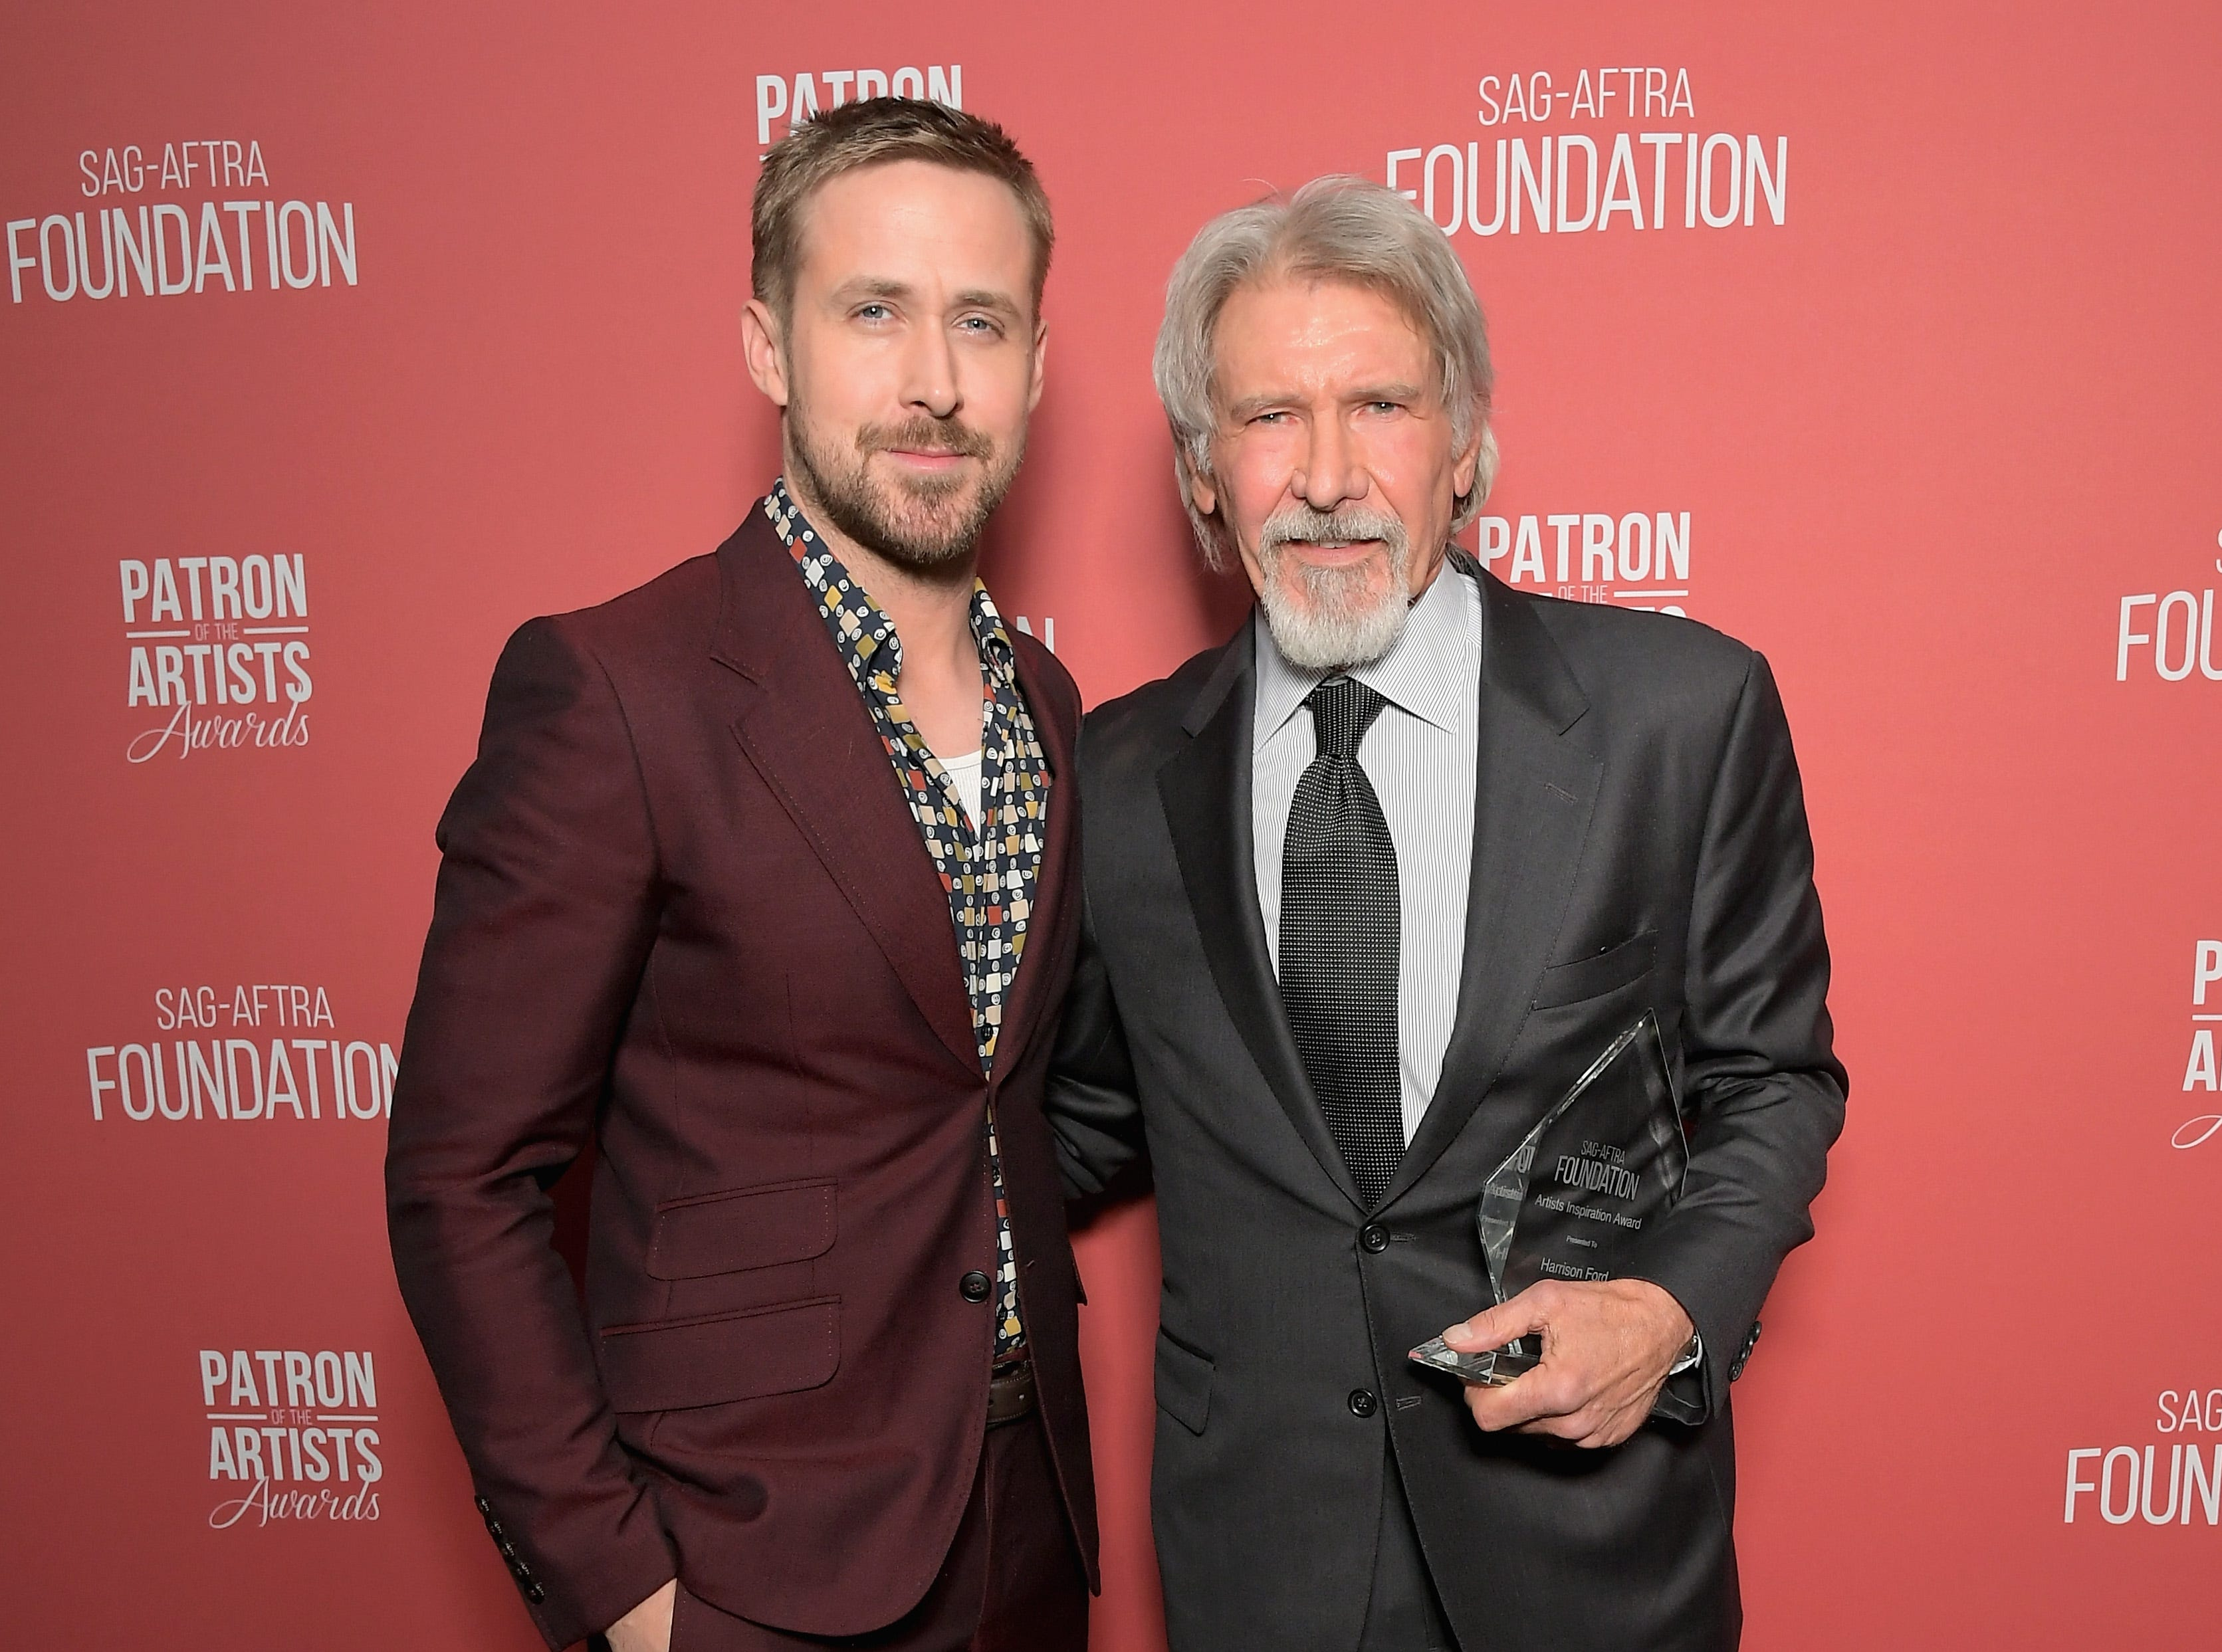 BEVERLY HILLS, CA - NOVEMBER 08:  Ryan Gosling (L) and Artists Inspiration Award recipient Harrison Ford attend the SAG-AFTRA Foundation's 3rd Annual Patron of the Artists Awards at the Wallis Annenberg Center for the Performing Arts on November 8, 2018 in Beverly Hills, California.  (Photo by Charley Gallay/Getty Images for SAG-AFTRA Foundation) ORG XMIT: 775247555 ORIG FILE ID: 1059475042